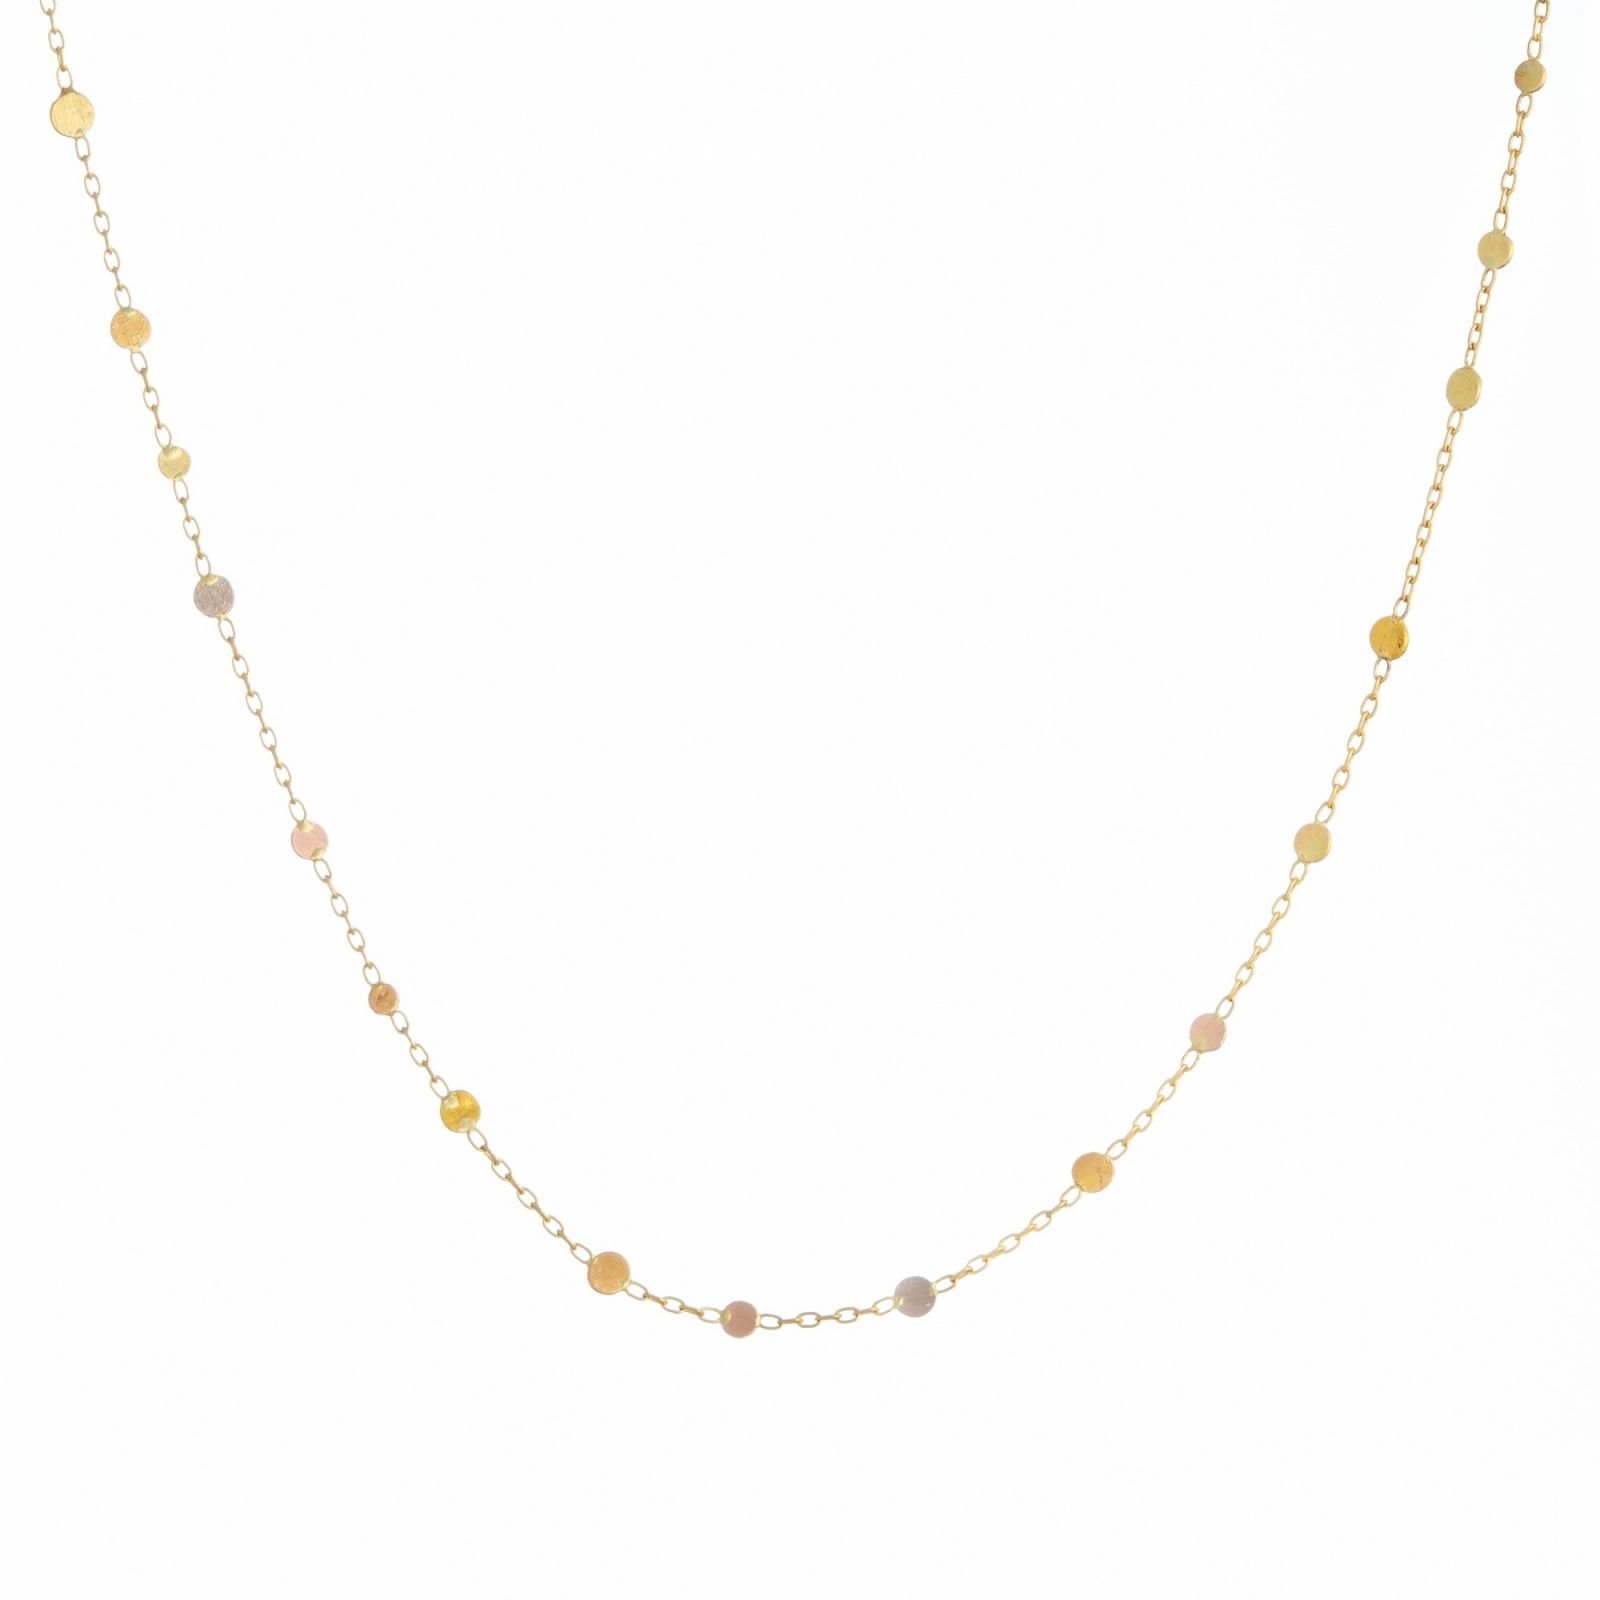 Sia Taylor KN18 YRAIN Rainbow Scattered Dots Necklace WB